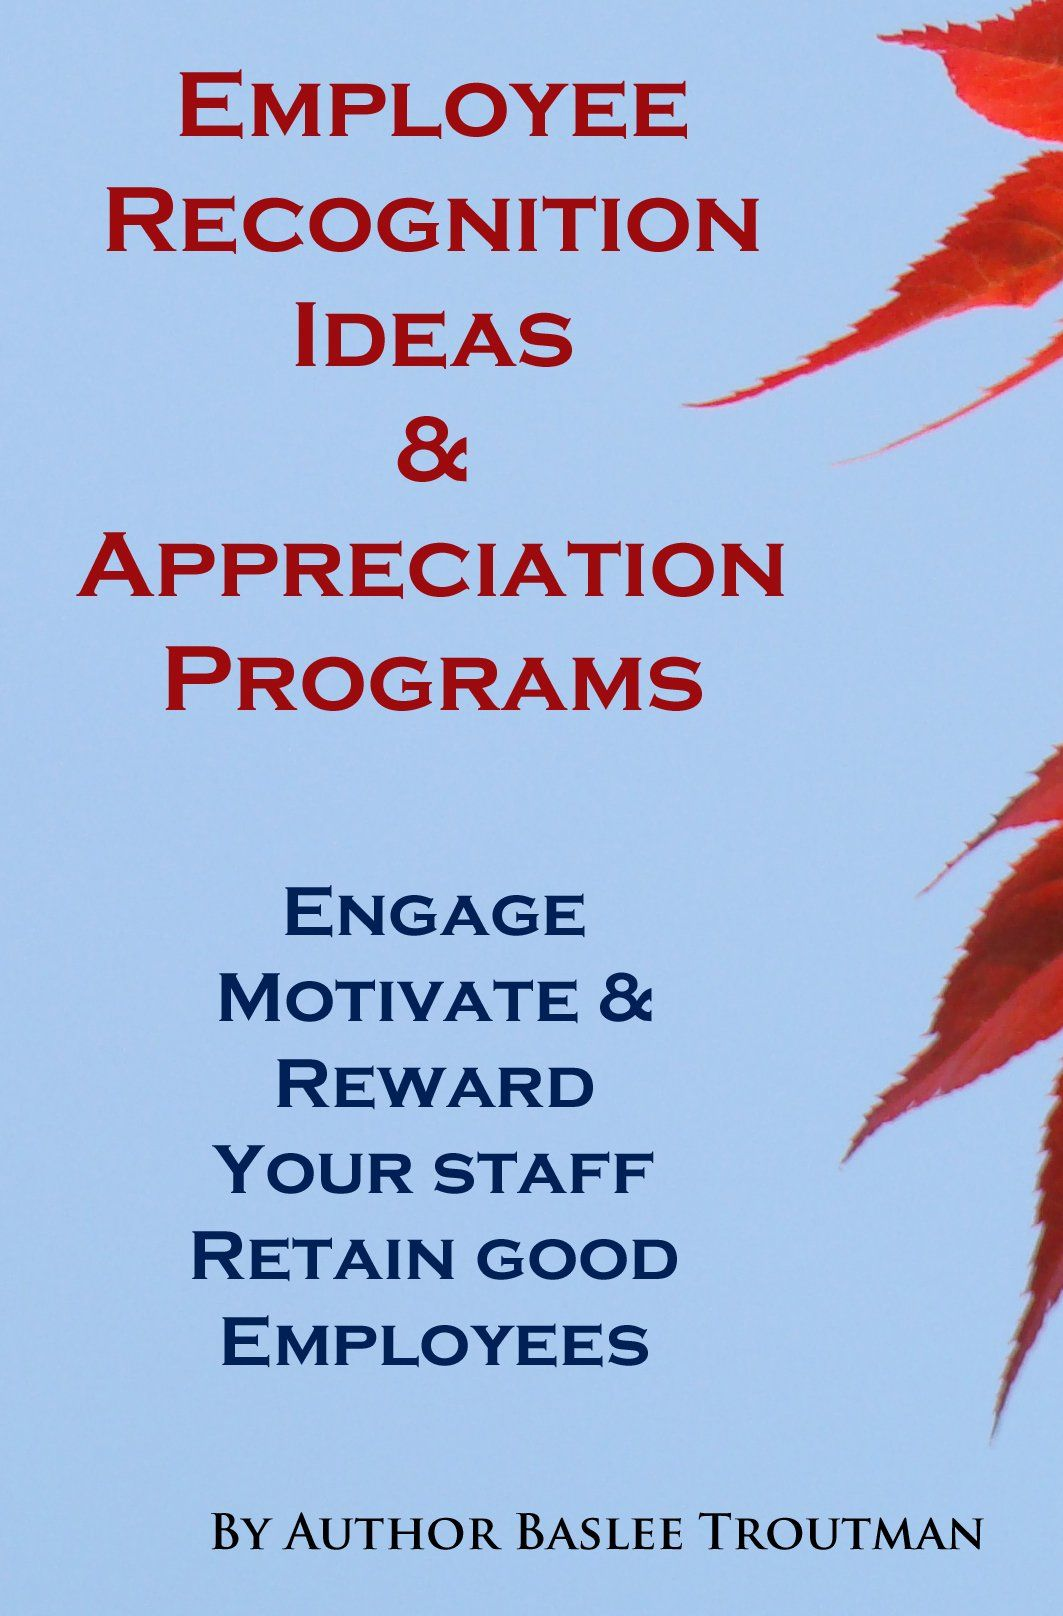 Employee Appreciation Poster | www.pixshark.com - Images ...